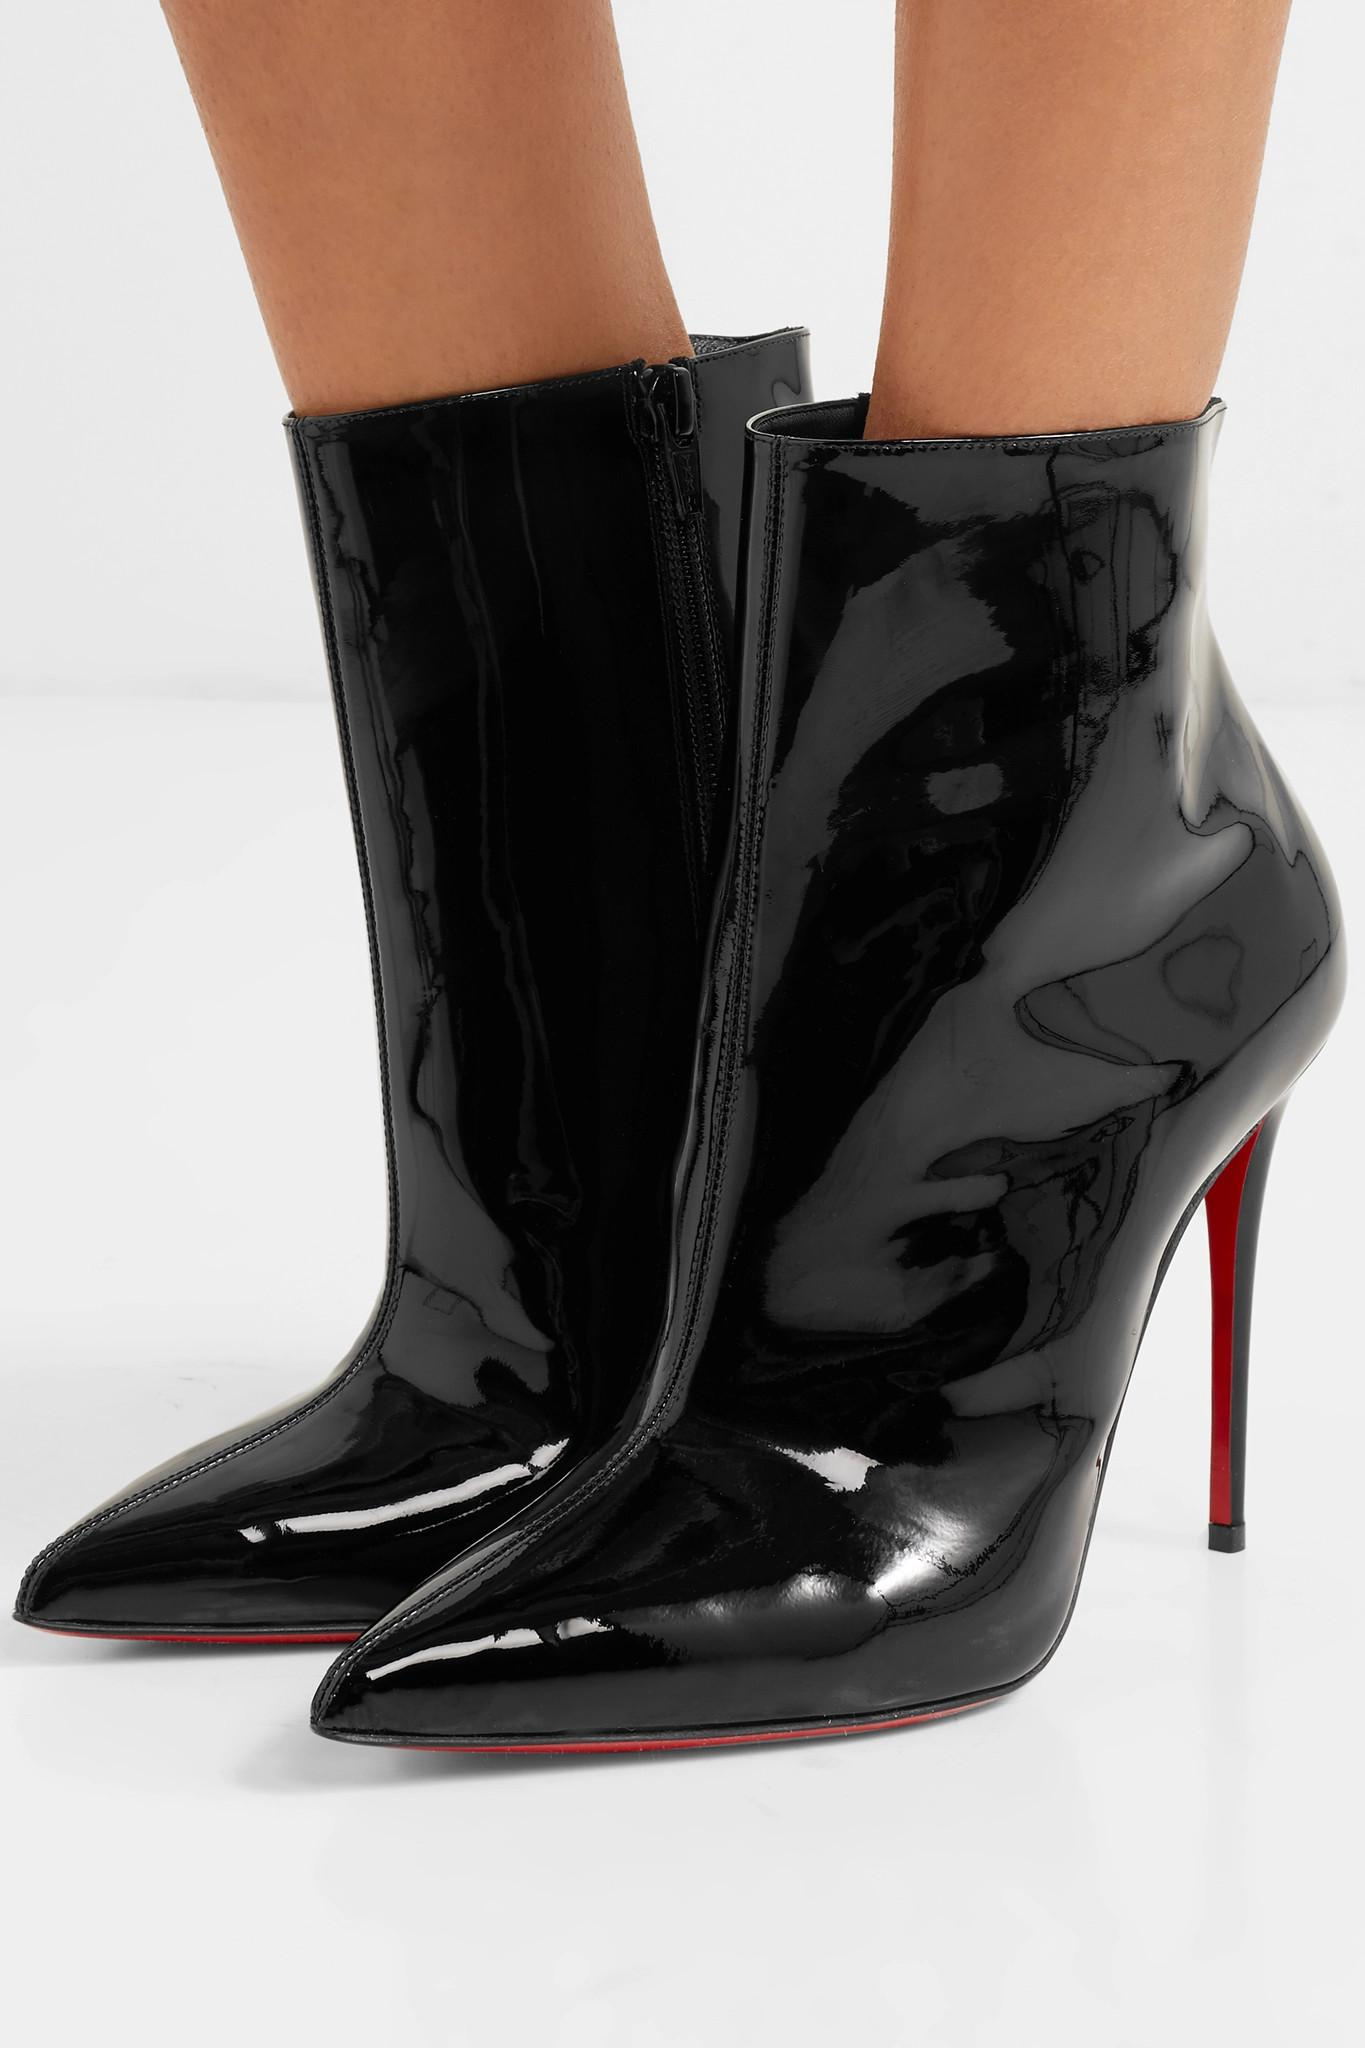 8df8a90bf1c Christian Louboutin - Black So Kate Booty 100 Patent-leather Ankle Boots -  Lyst. View fullscreen